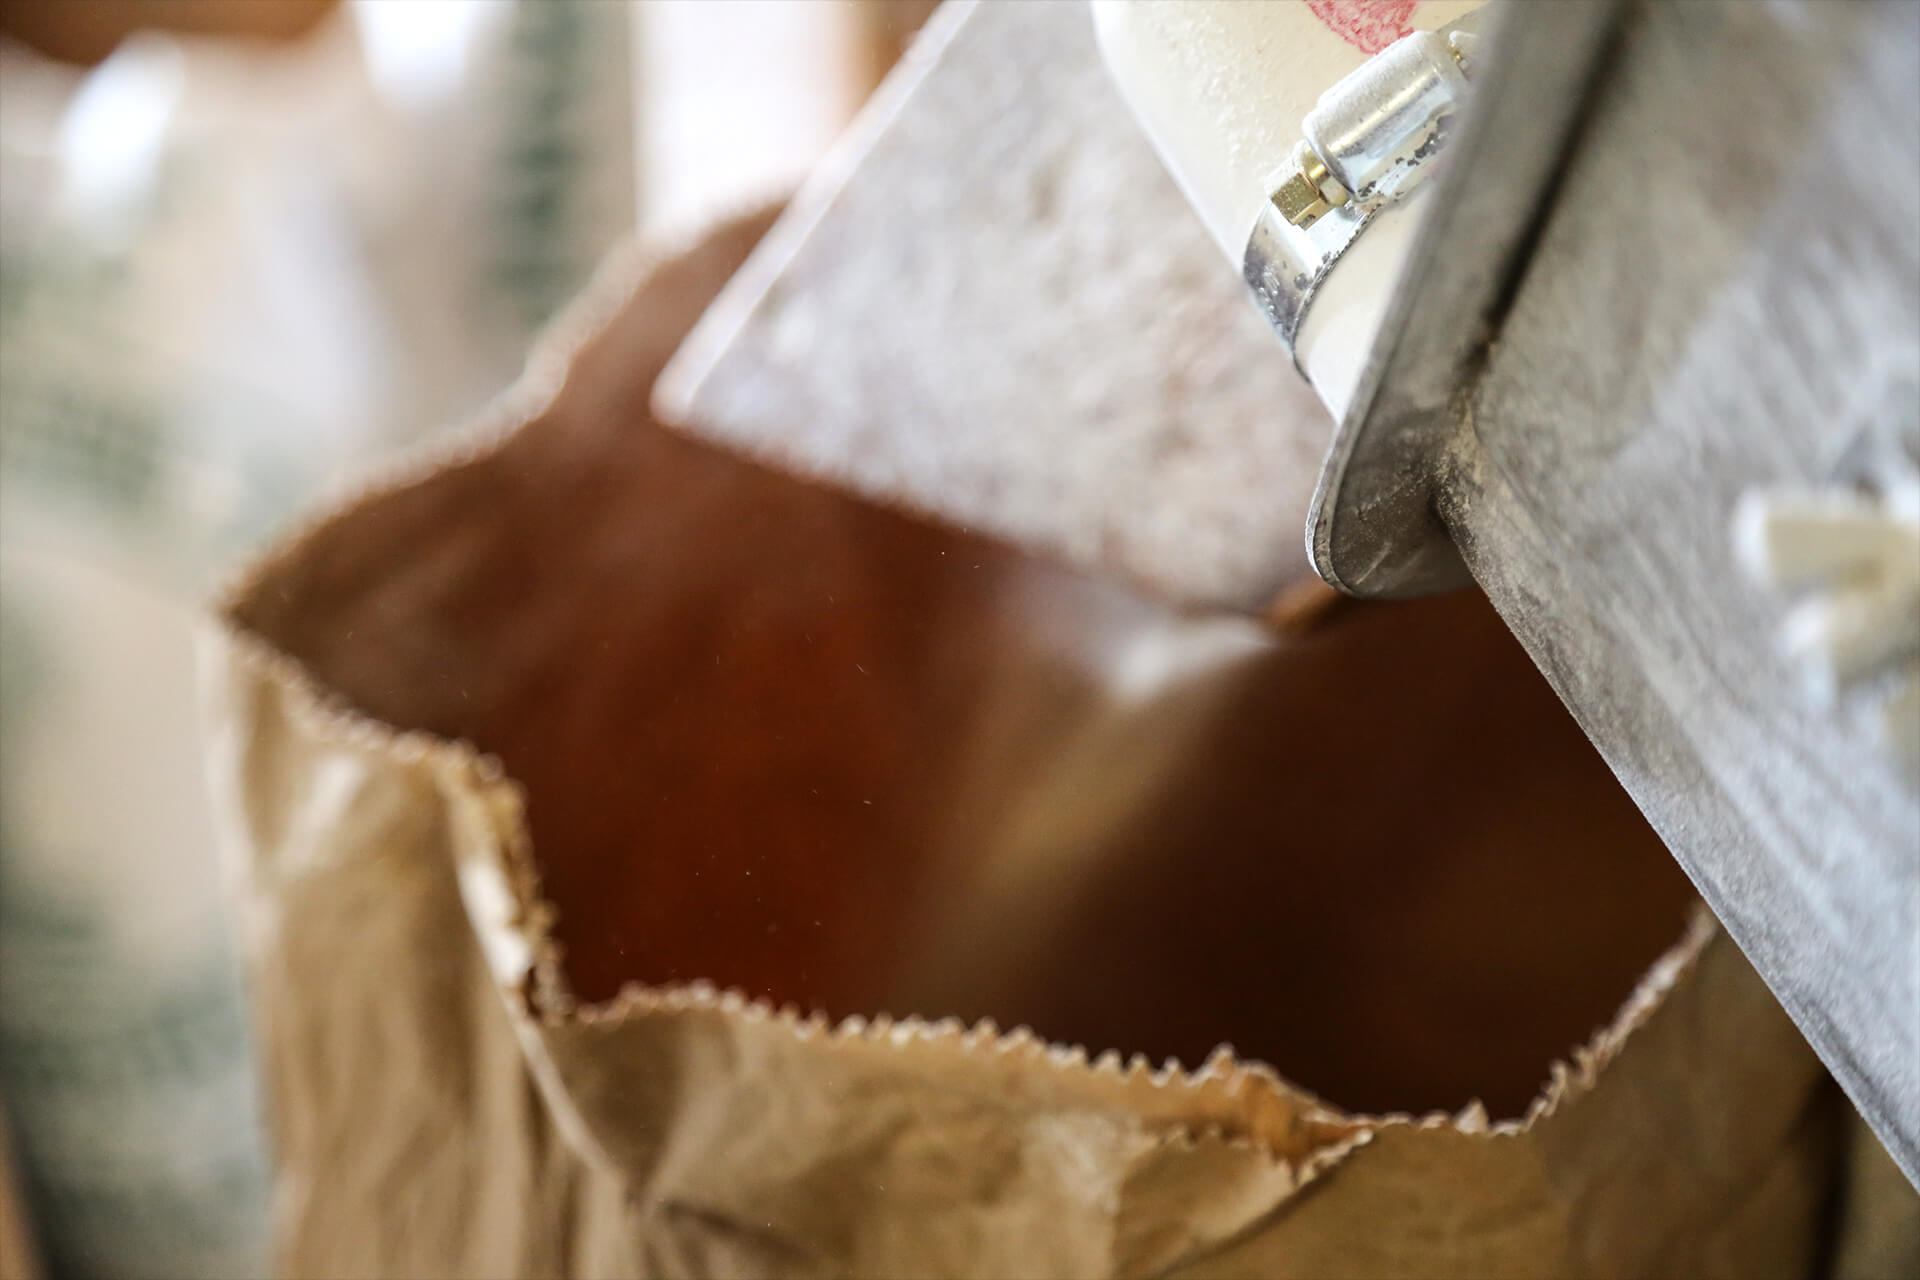 WeAreShuffle, Agency, Creative, Photography, Film, Production, Stoats Mill, Flour, Grains, Wheat, Hand, Light, Britain, Bag, Pouring